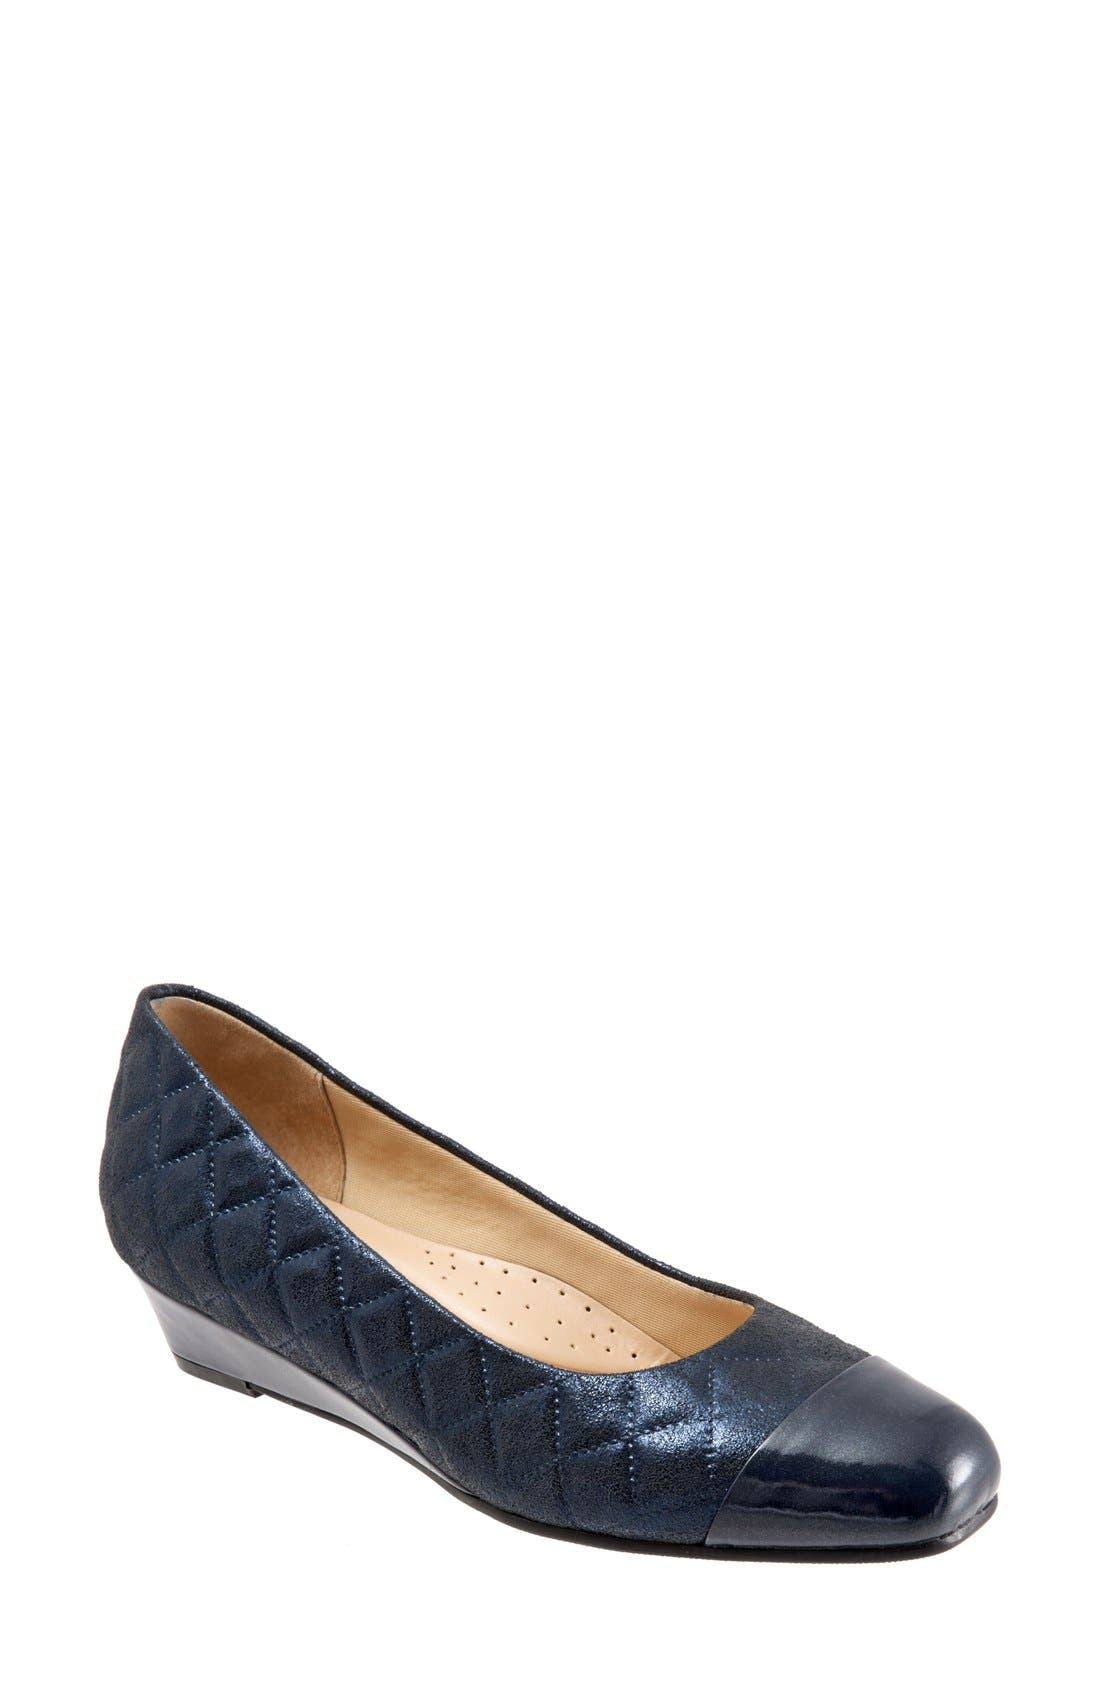 Trotters 'Langley' Cap Toe Wedge Pump (Women)